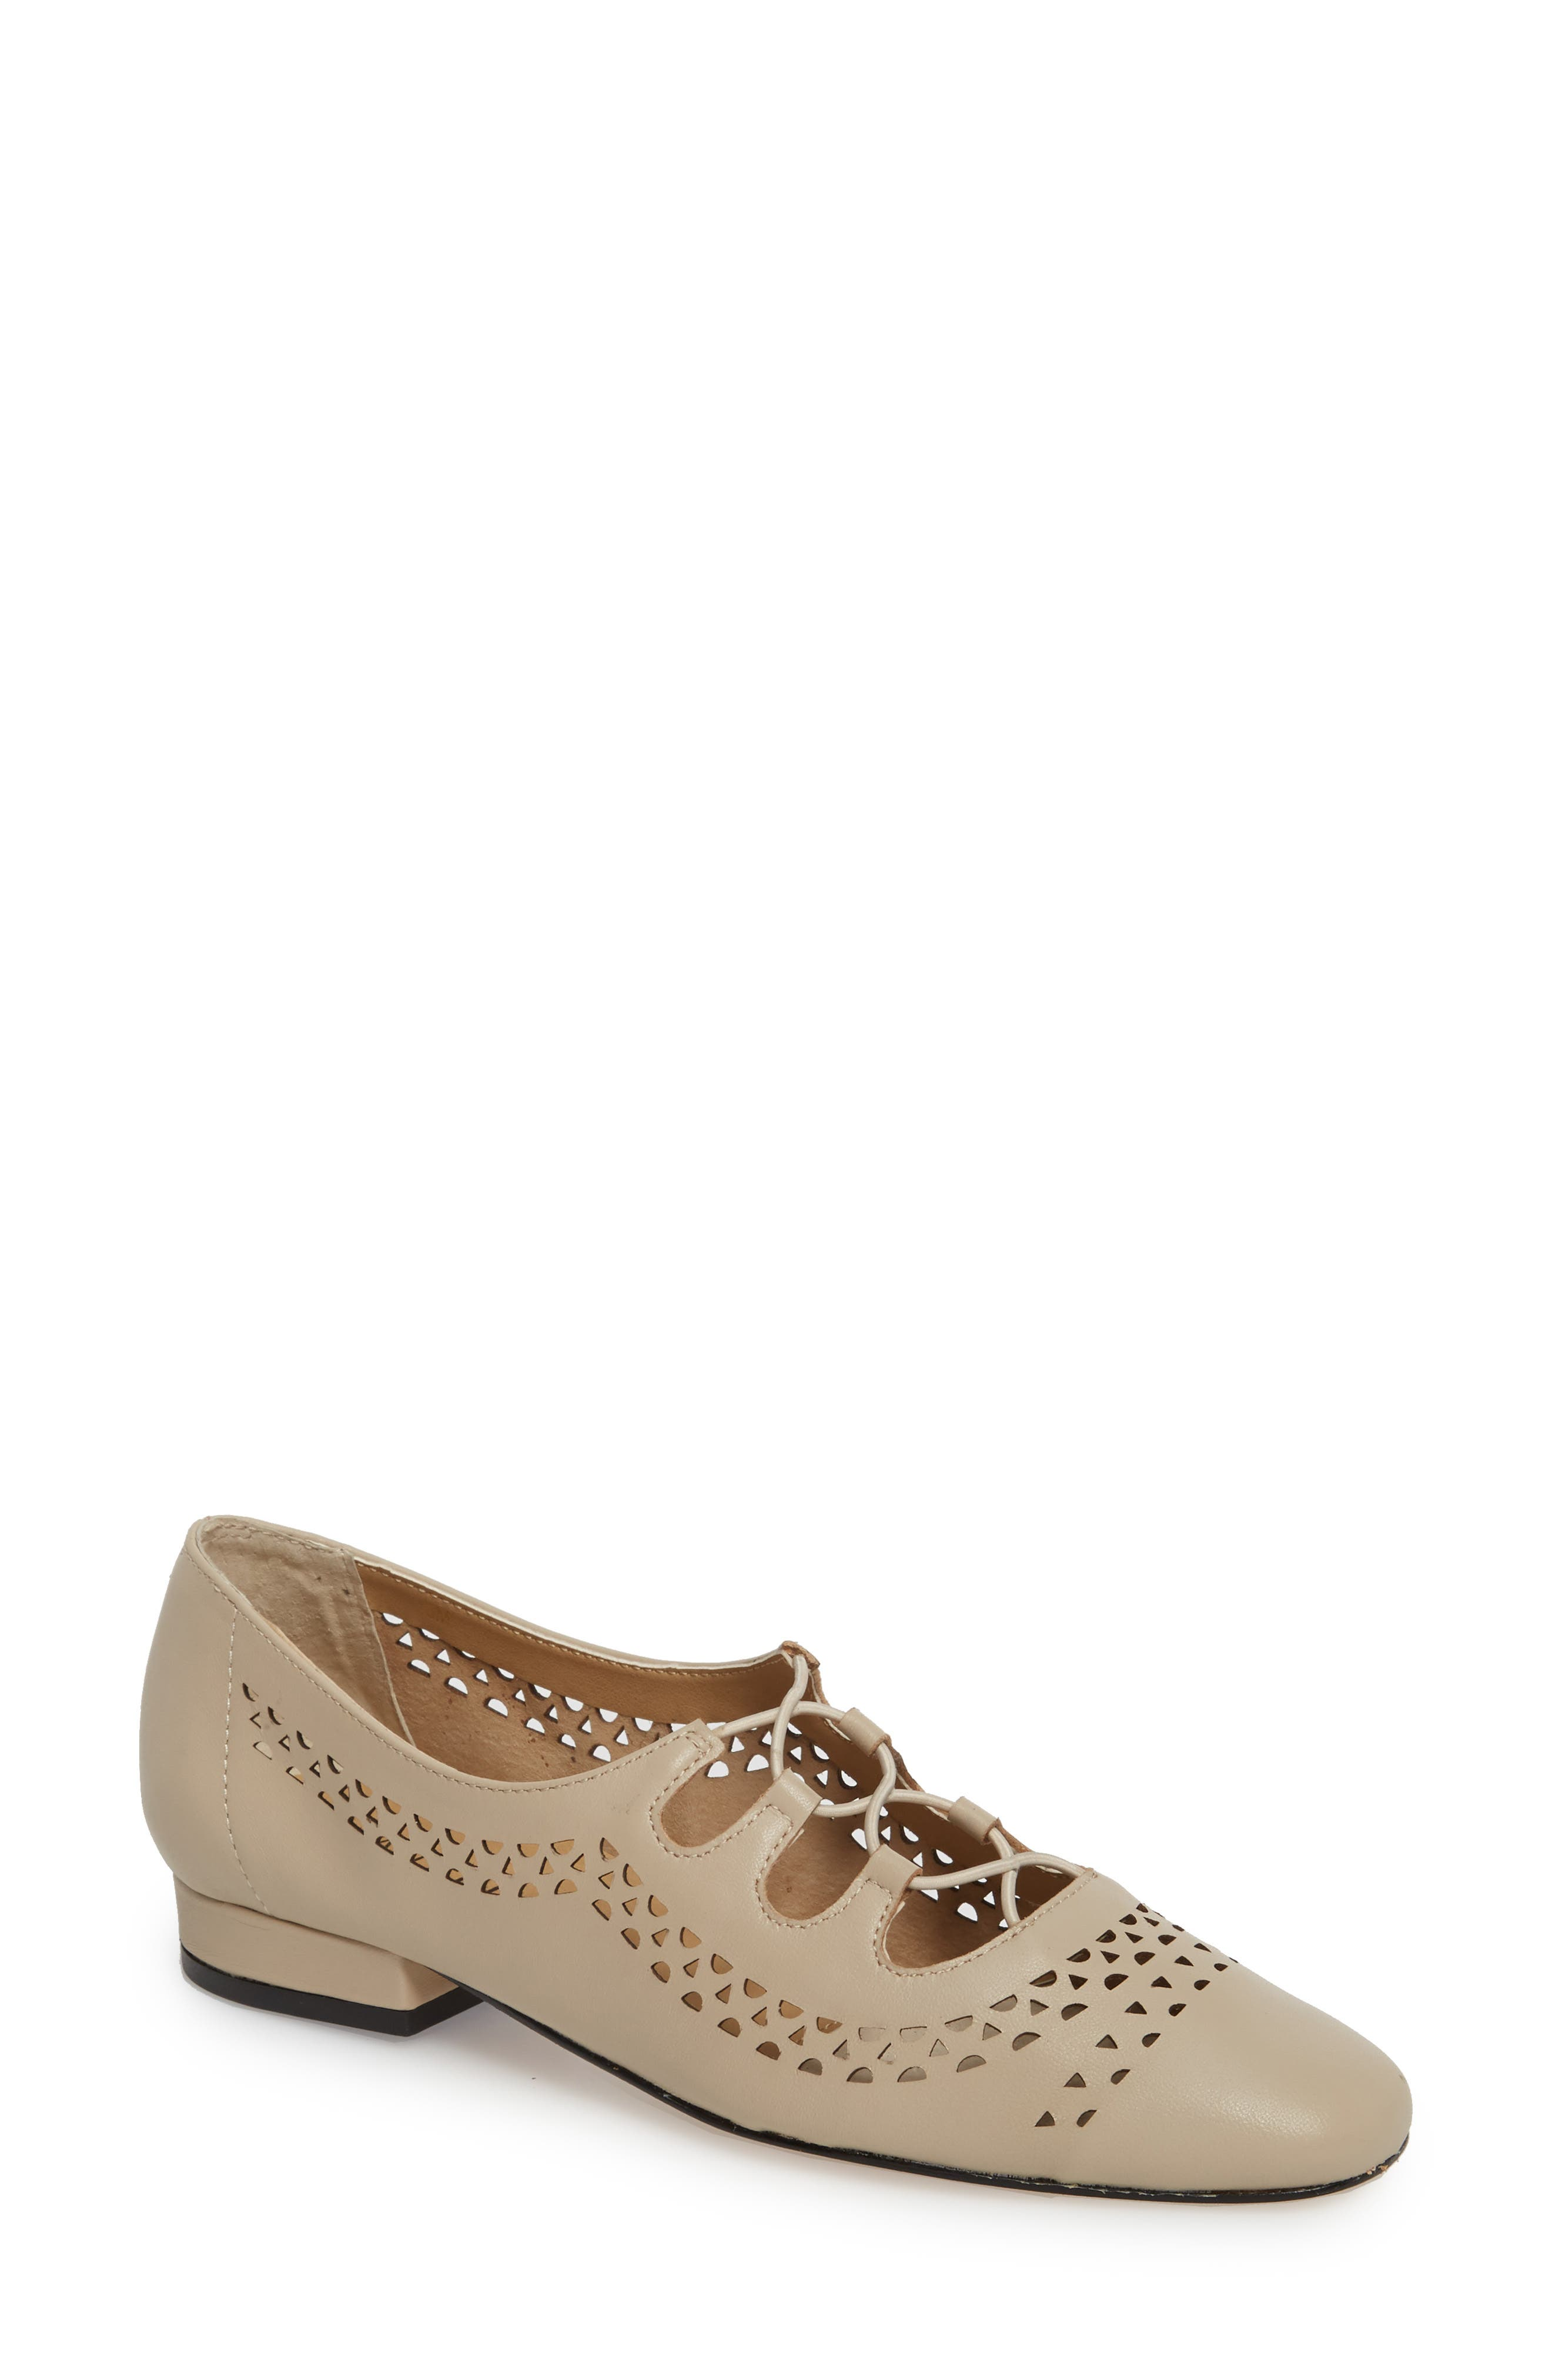 Fabra Perforated Oxford Slip-On,                             Main thumbnail 1, color,                             Ecru Leather